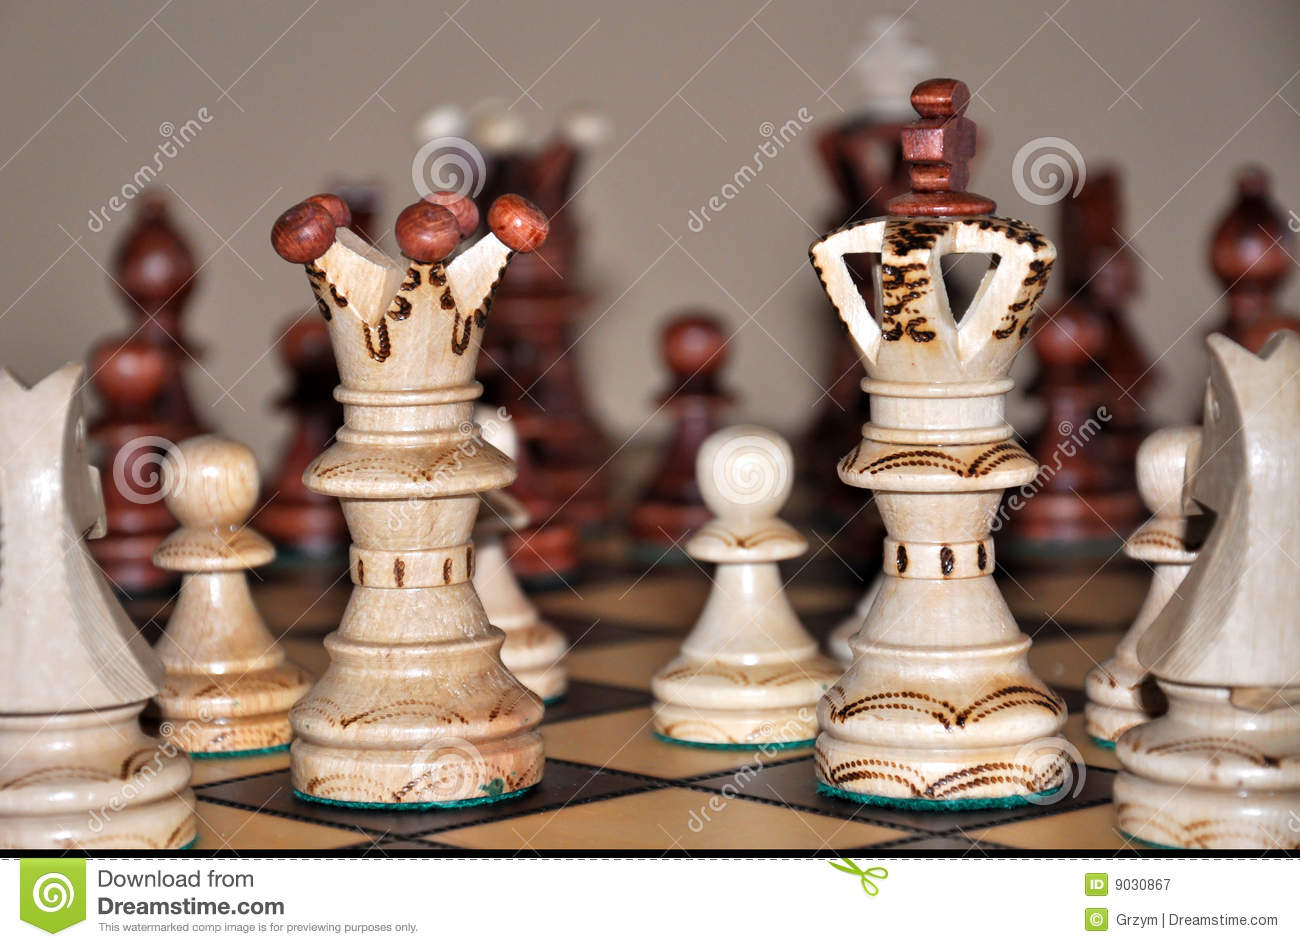 how to win at chess with only your king